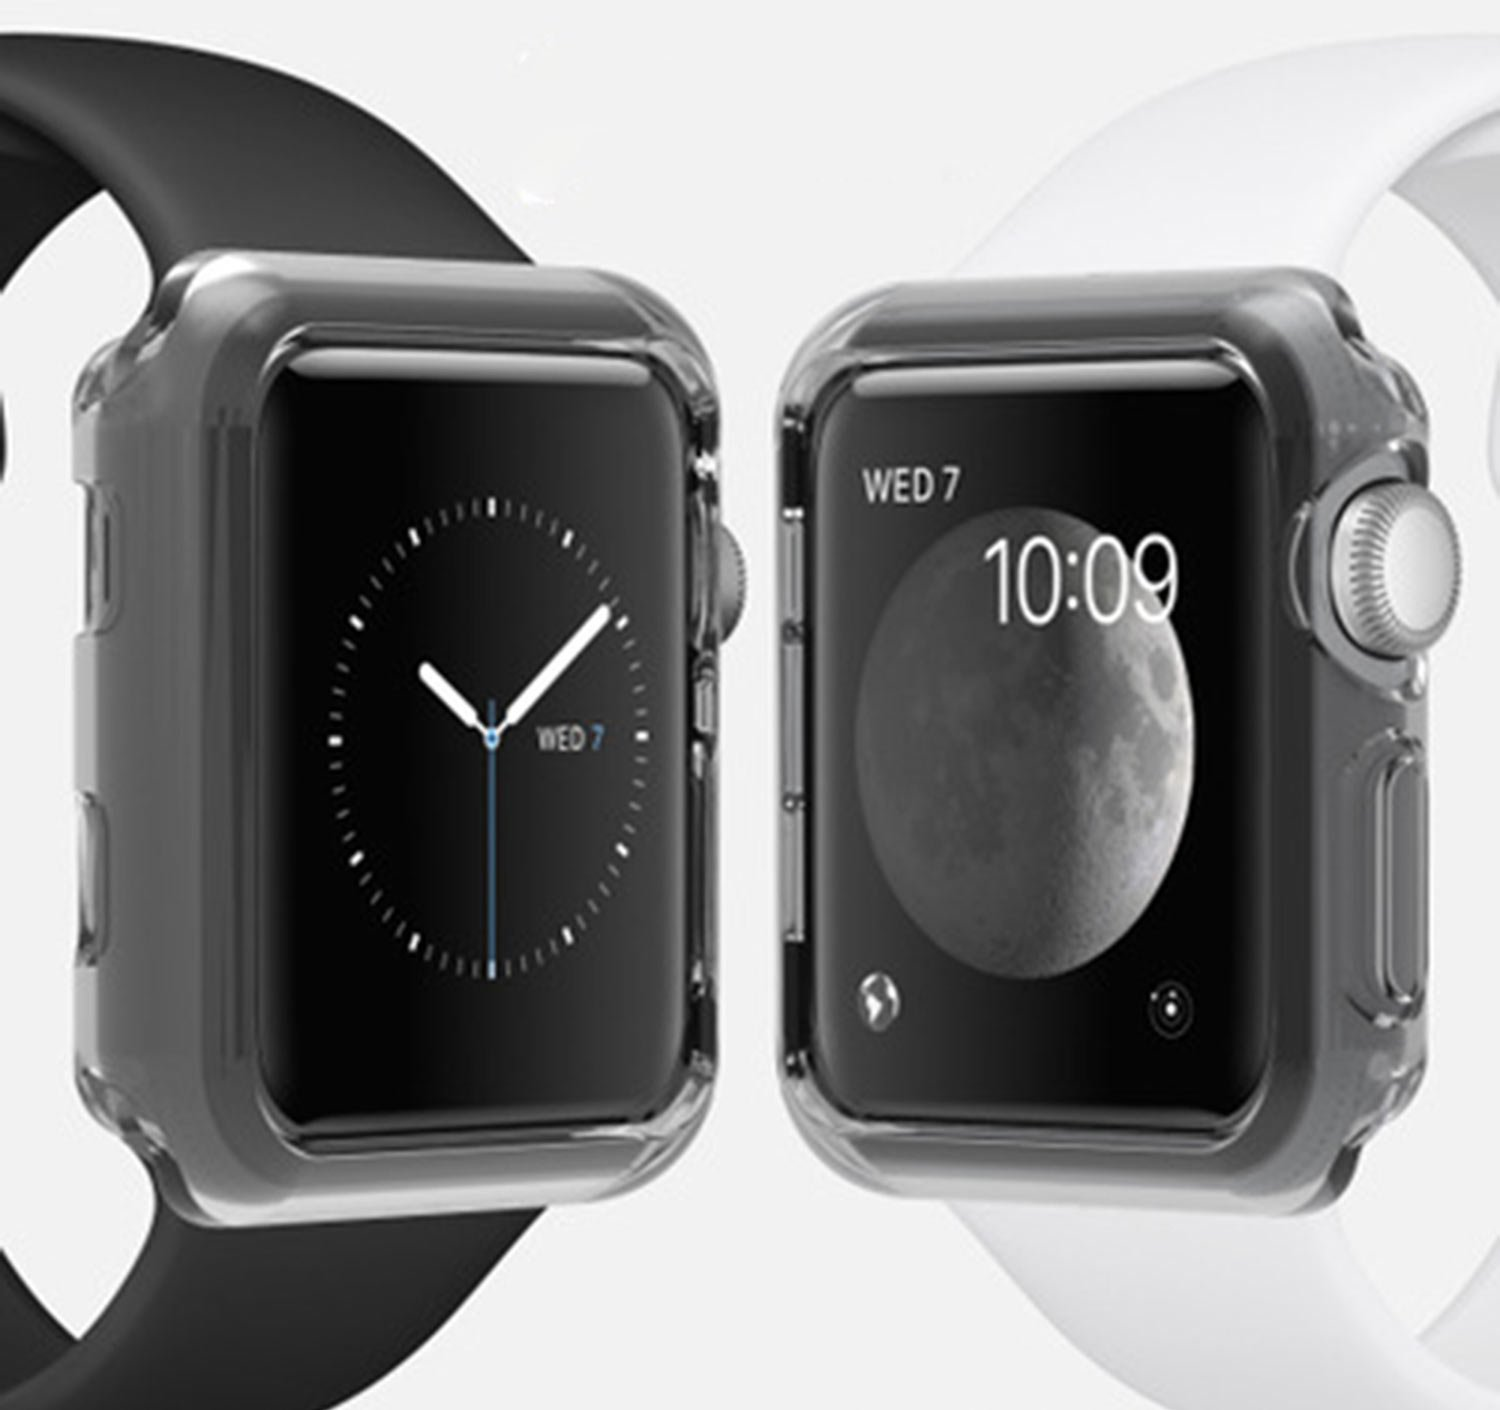 Silicone TPU Bumper Protective Cover Case For Apple Watch Series 3 2 42mm (GRAY BLACK)